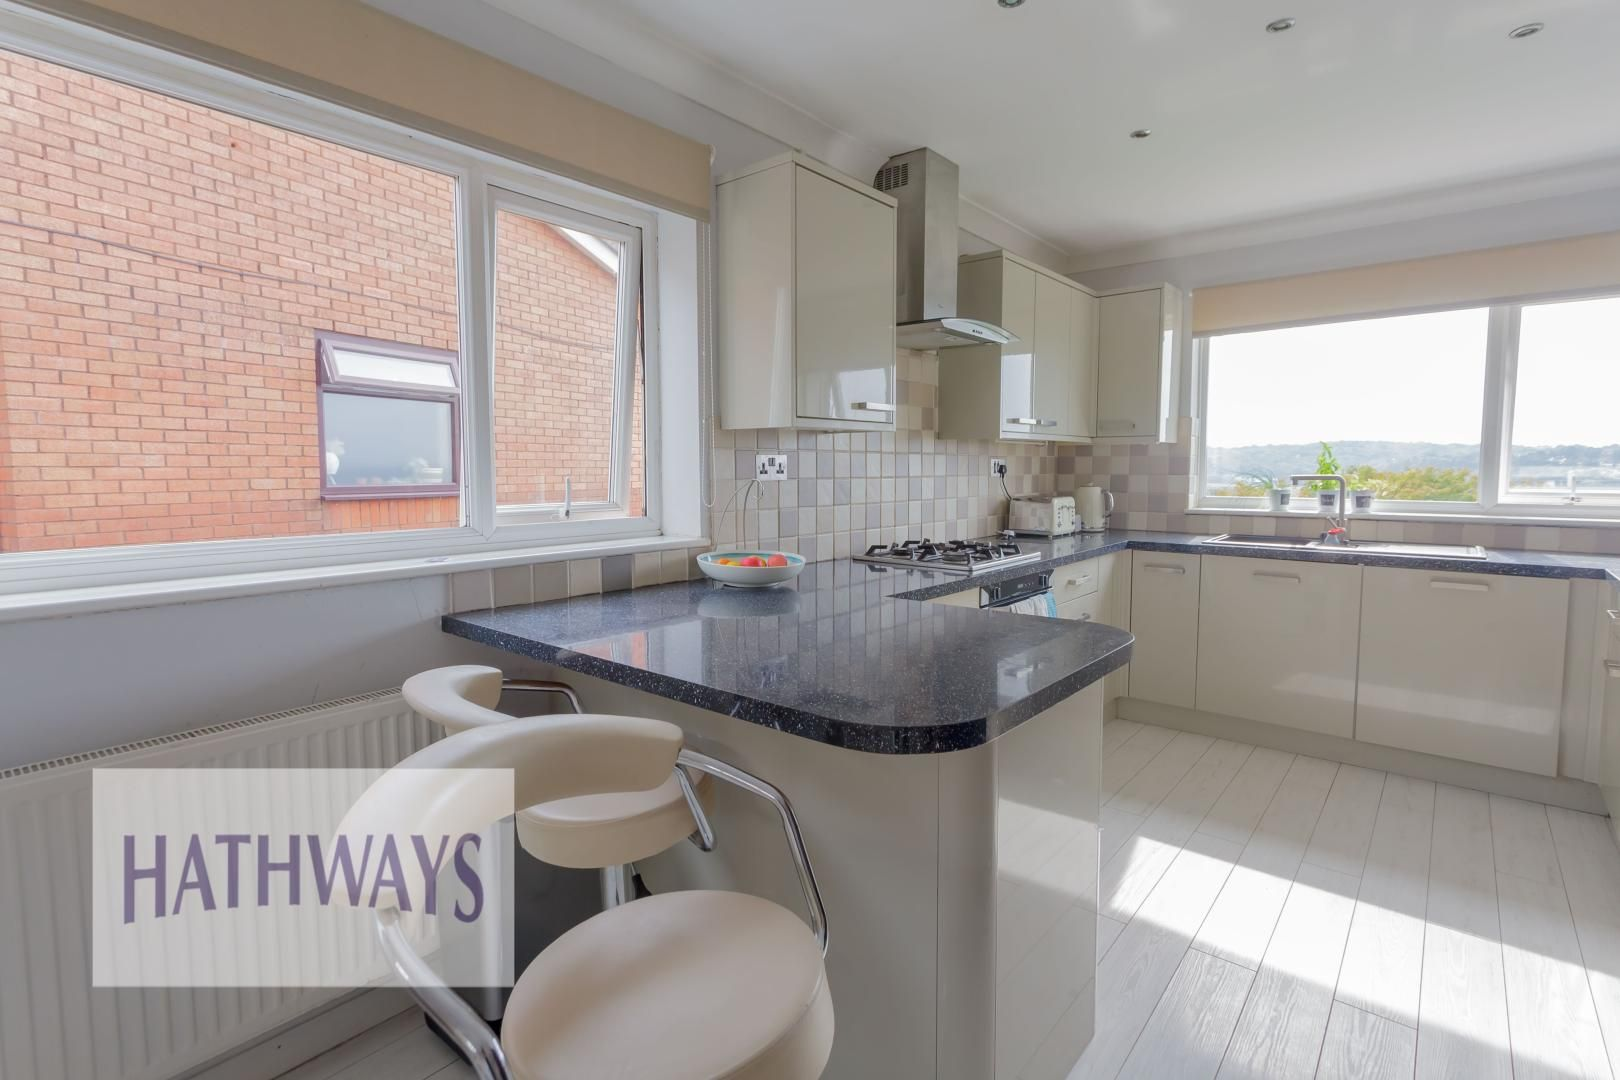 4 bed house for sale in Trinity View  - Property Image 10